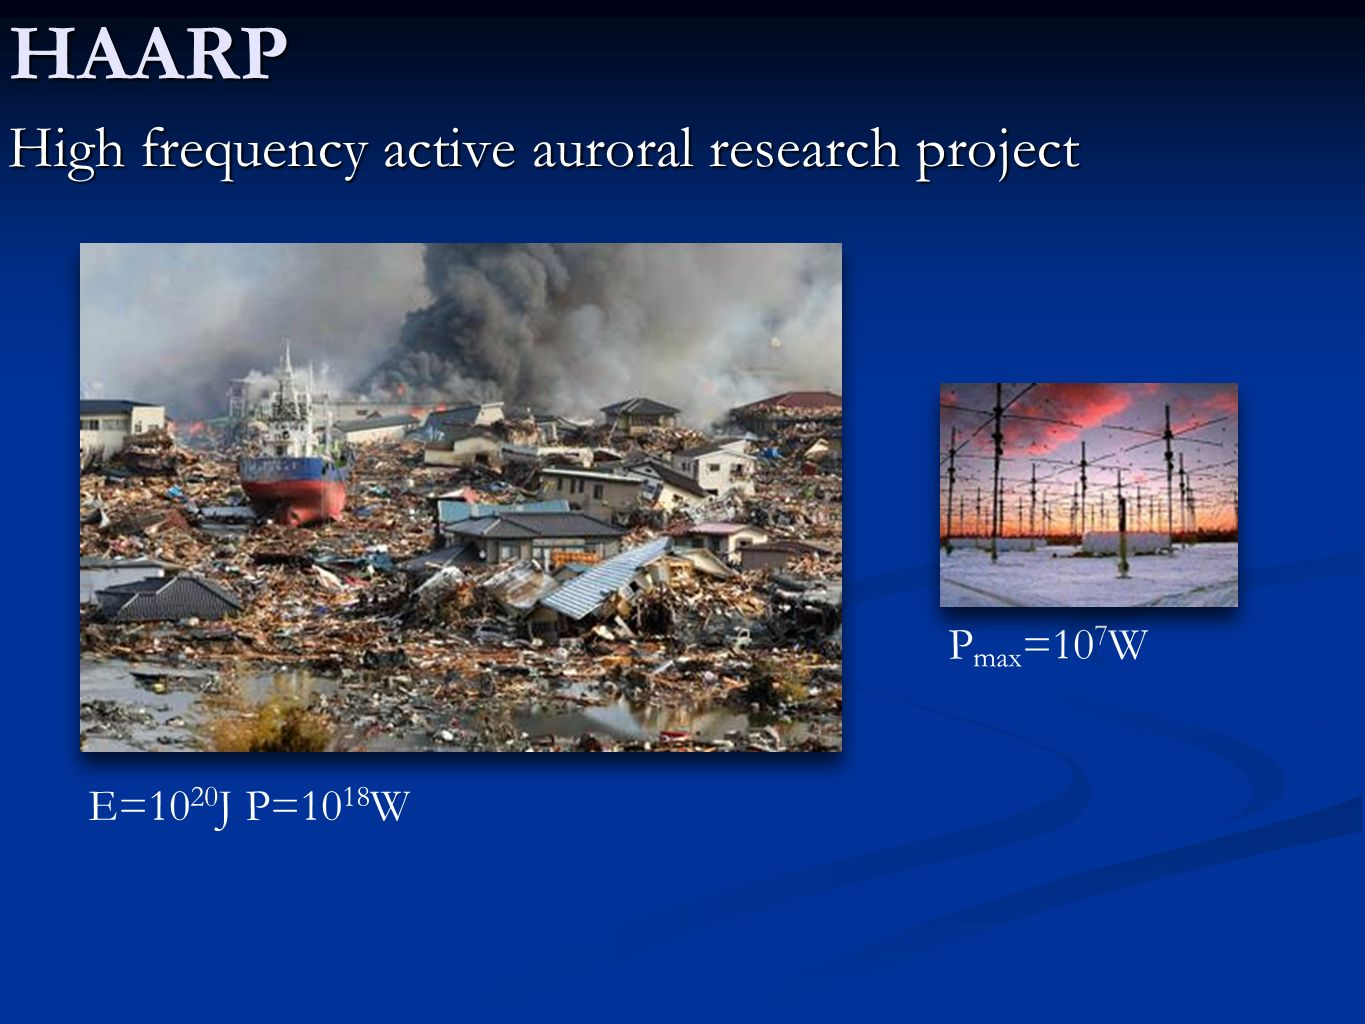 HAARP High frequency active auroral research project Pmax=107W